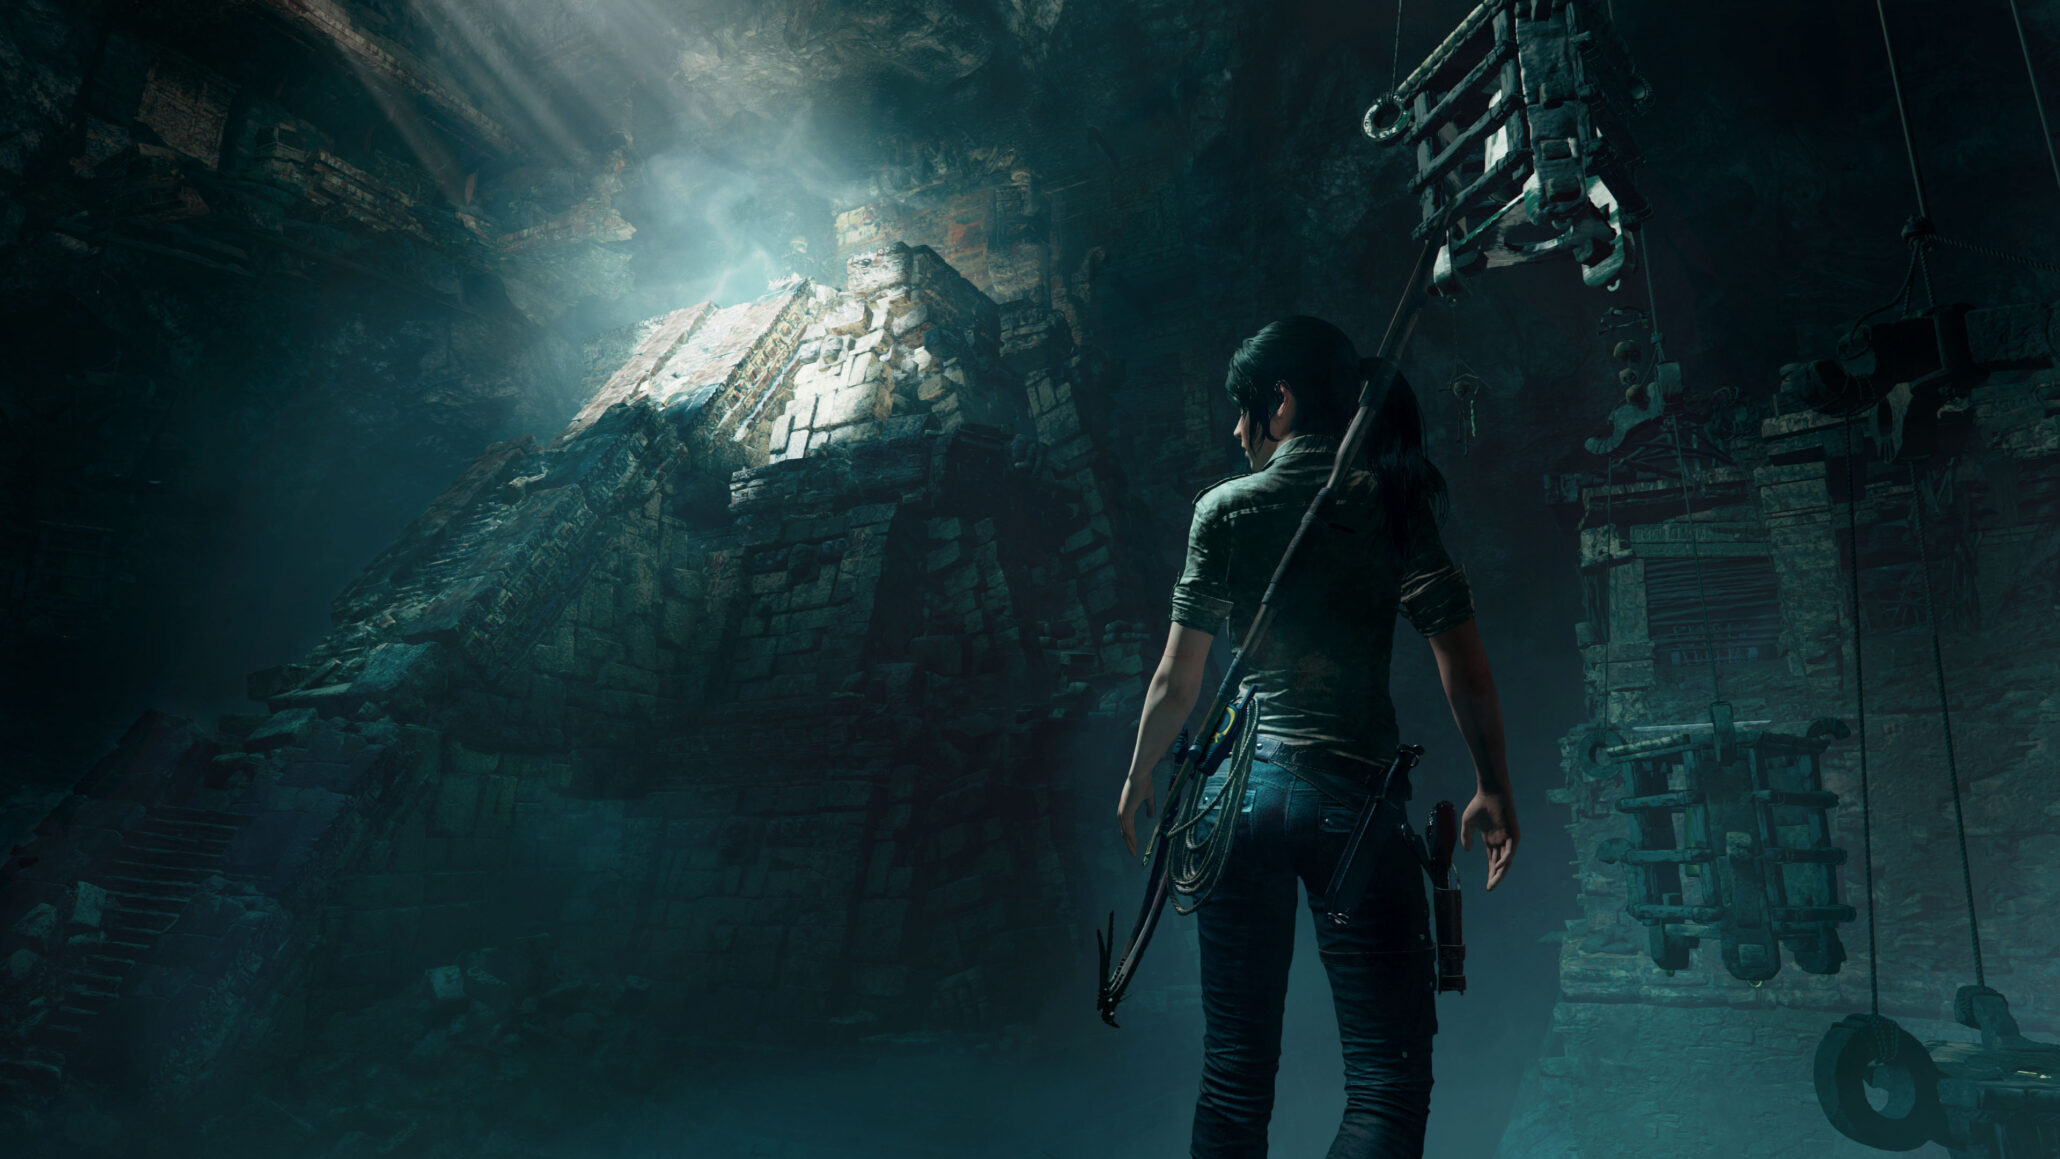 Spoilers Leaked Shadow Of The Tomb Raider Screenshots Show A